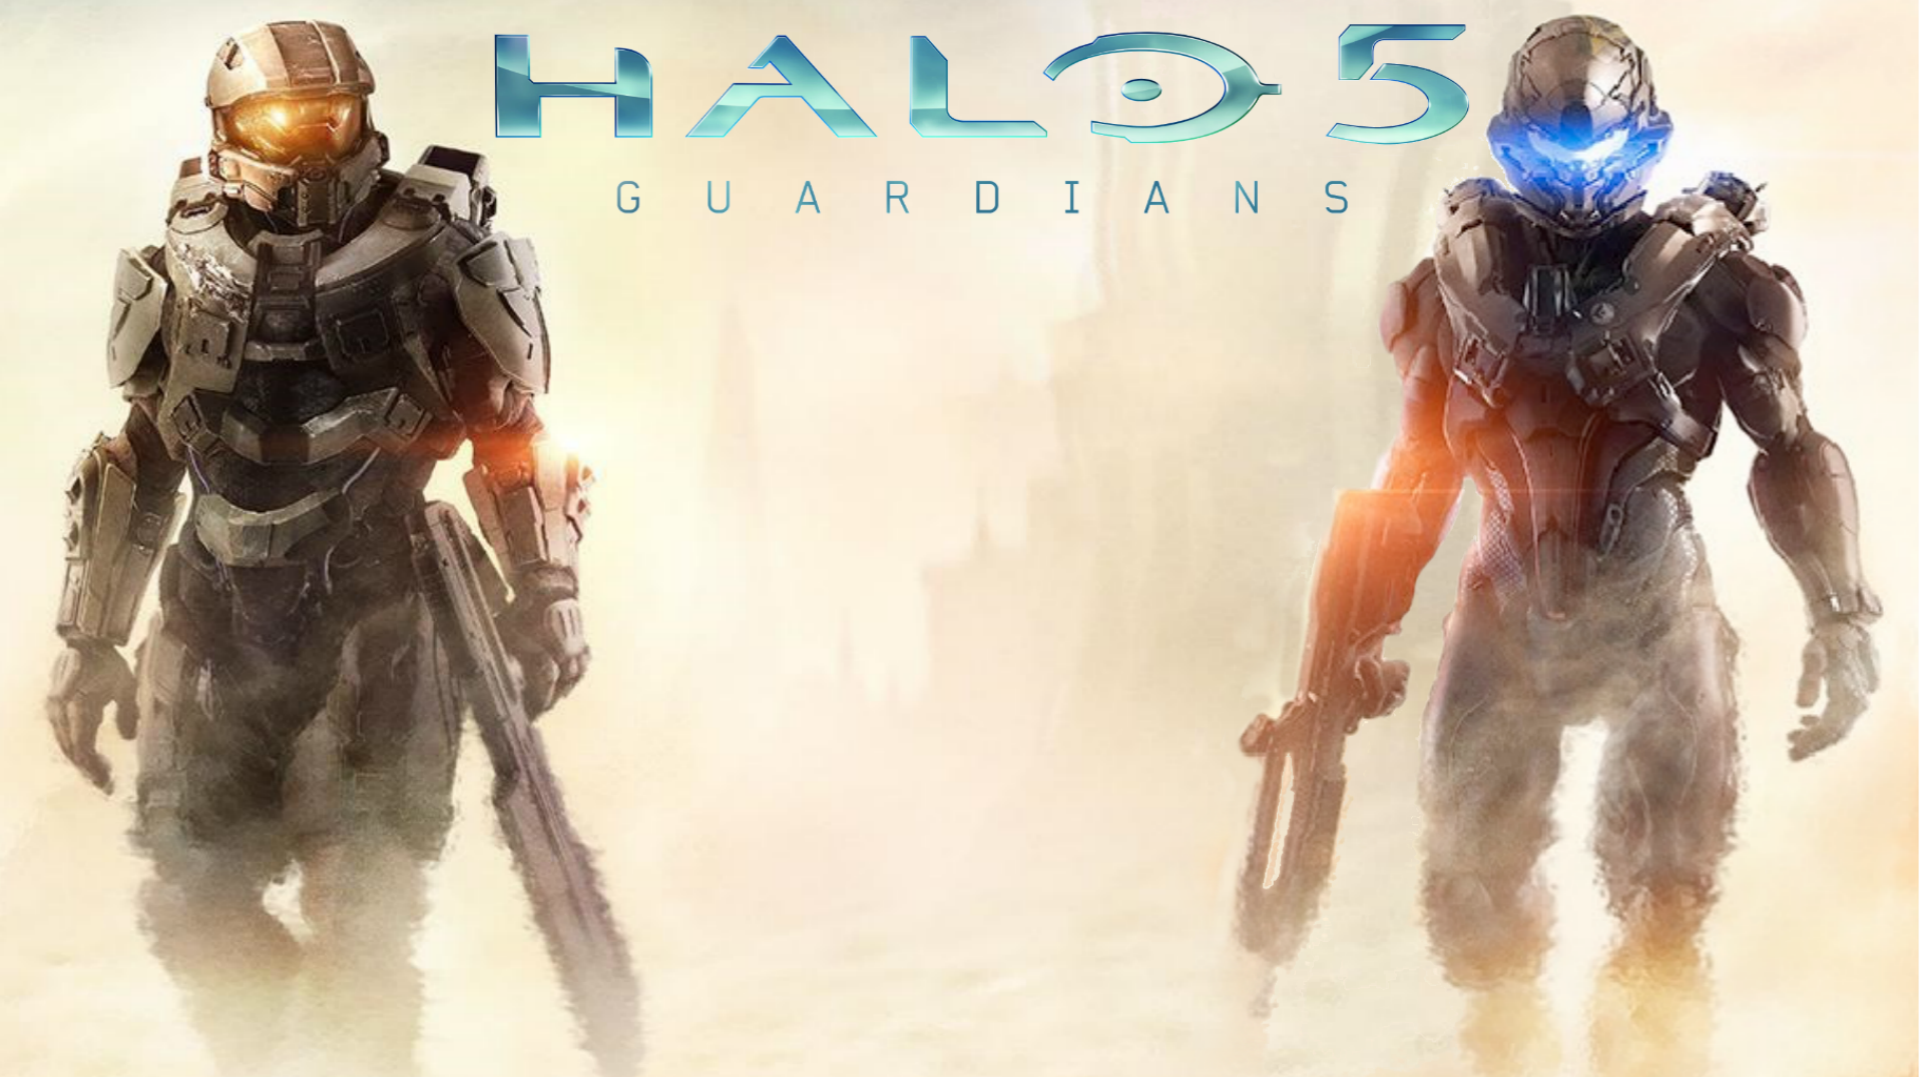 Looks like it'll be another awesome year for Halo fans.